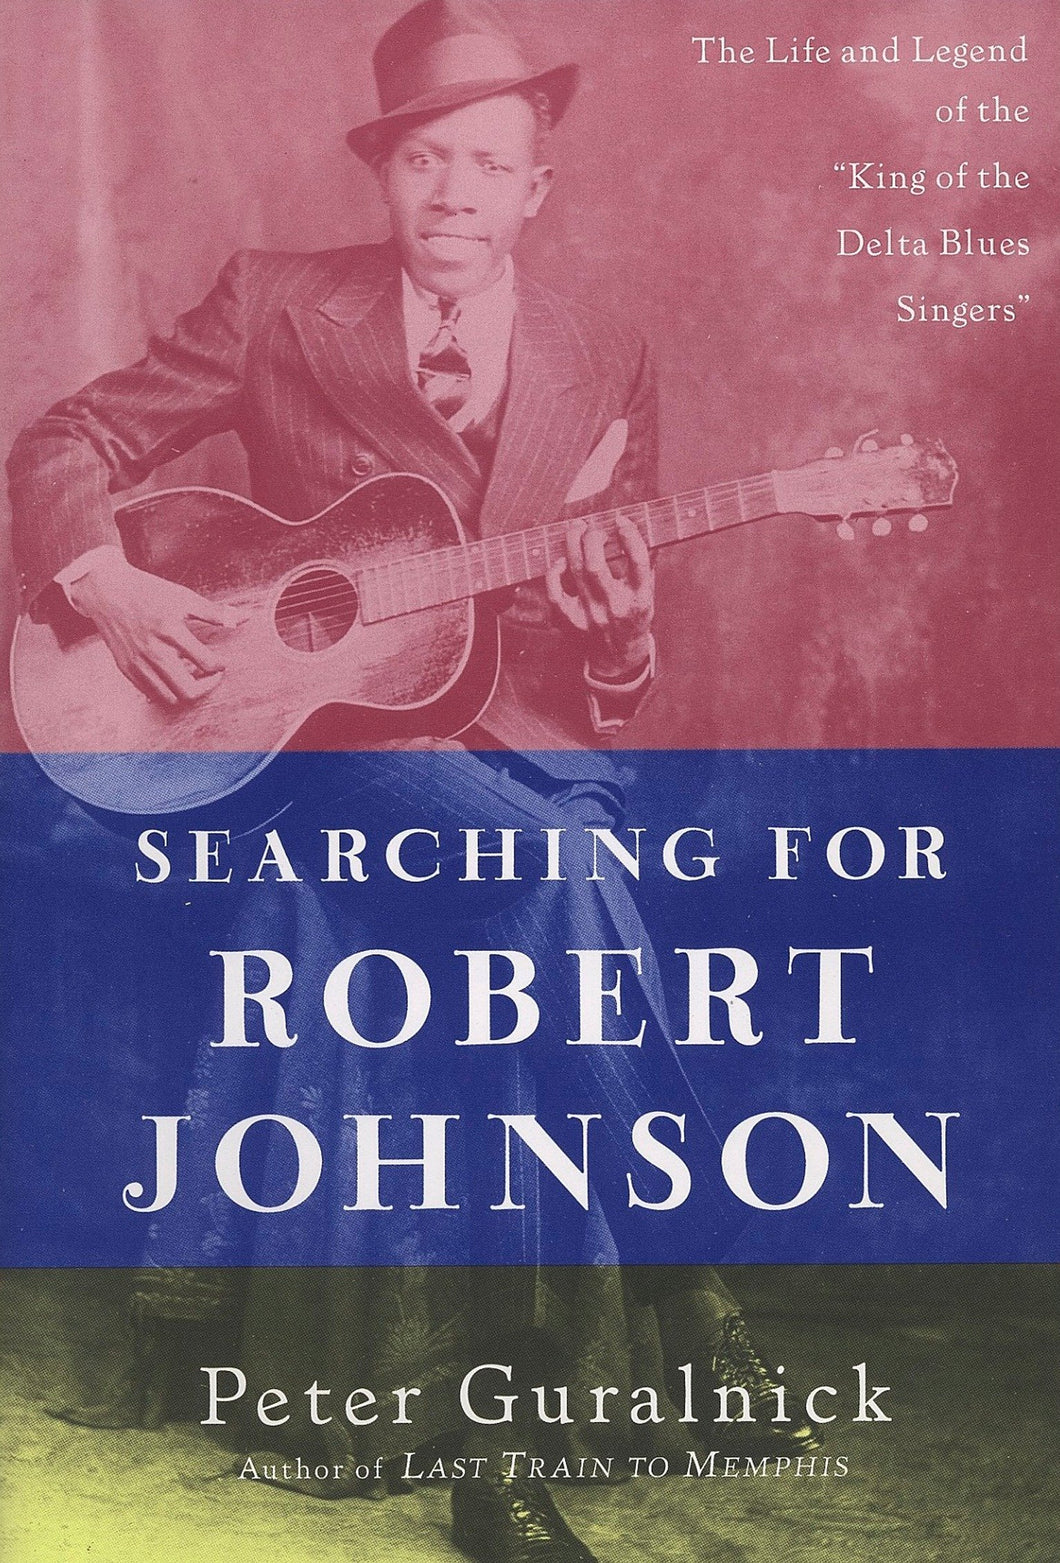 Searching for Robert Johnson (Peter Guralnick)